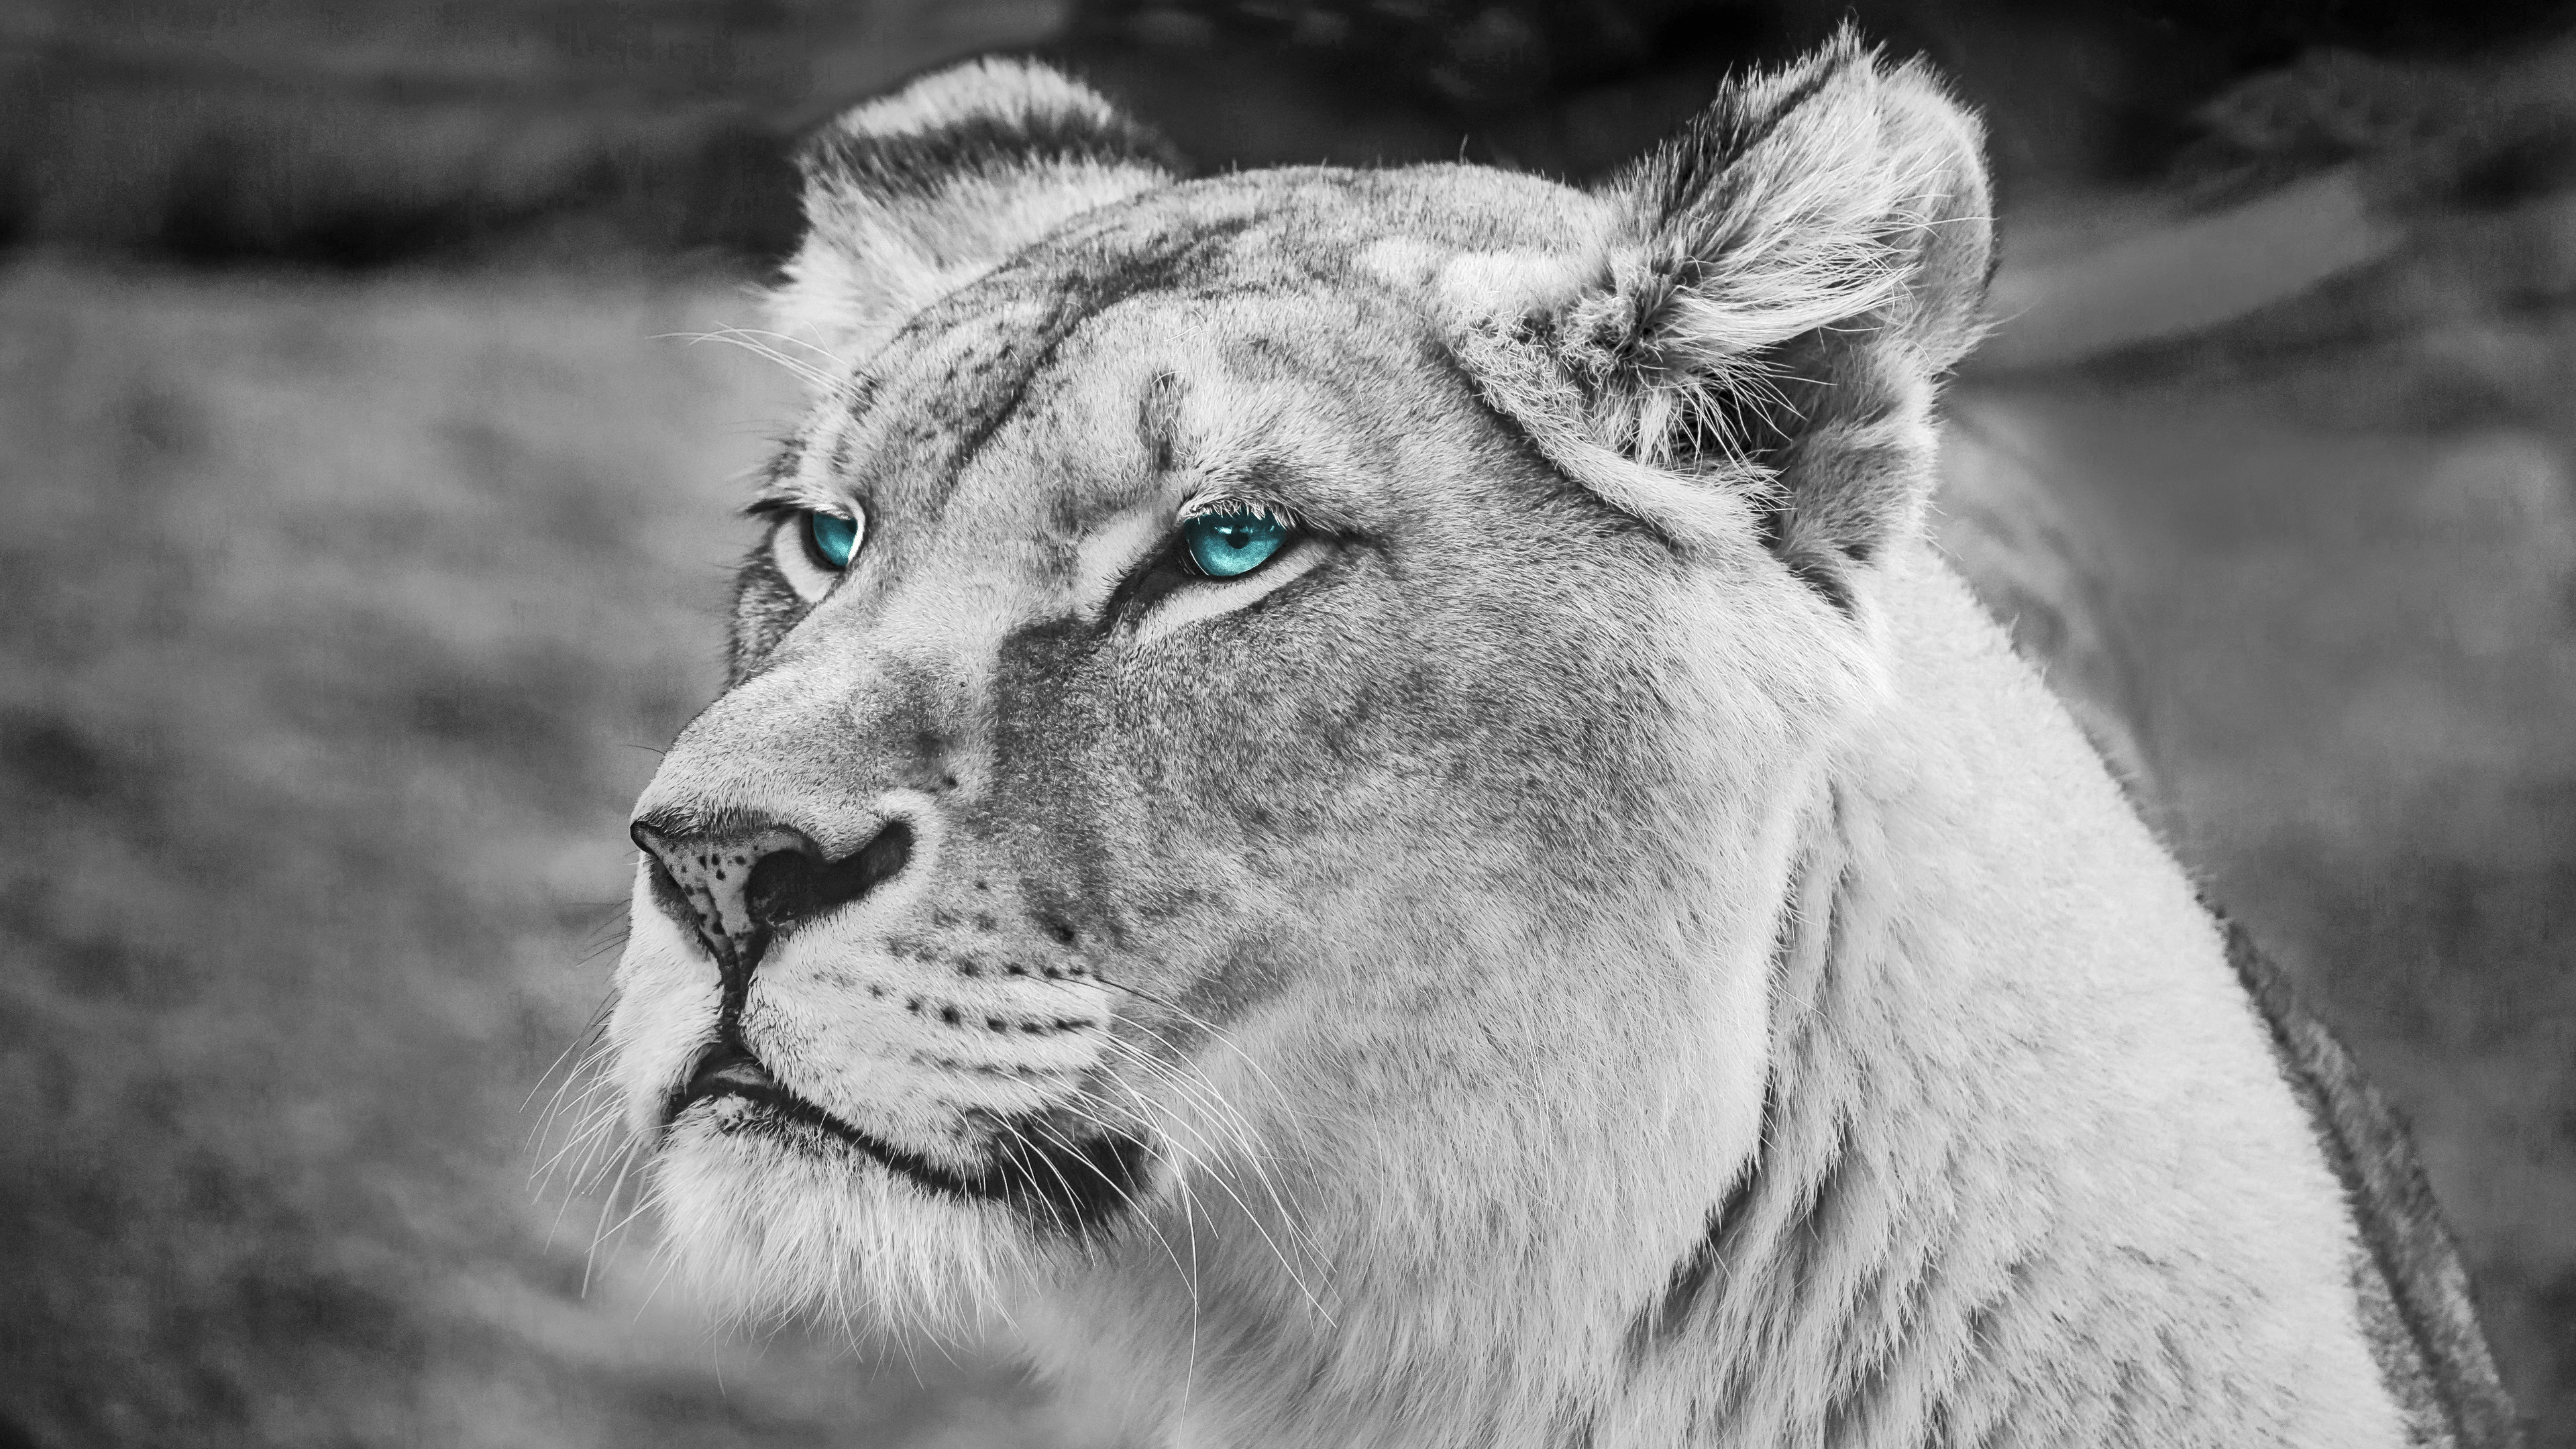 lion blue eyes monochrome 4k 1542238894 - Lion Blue Eyes Monochrome 4k - monochrome wallpapers, lion wallpapers, hd-wallpapers, blue eyes wallpapers, black and white wallpapers, animals wallpapers, 4k-wallpapers